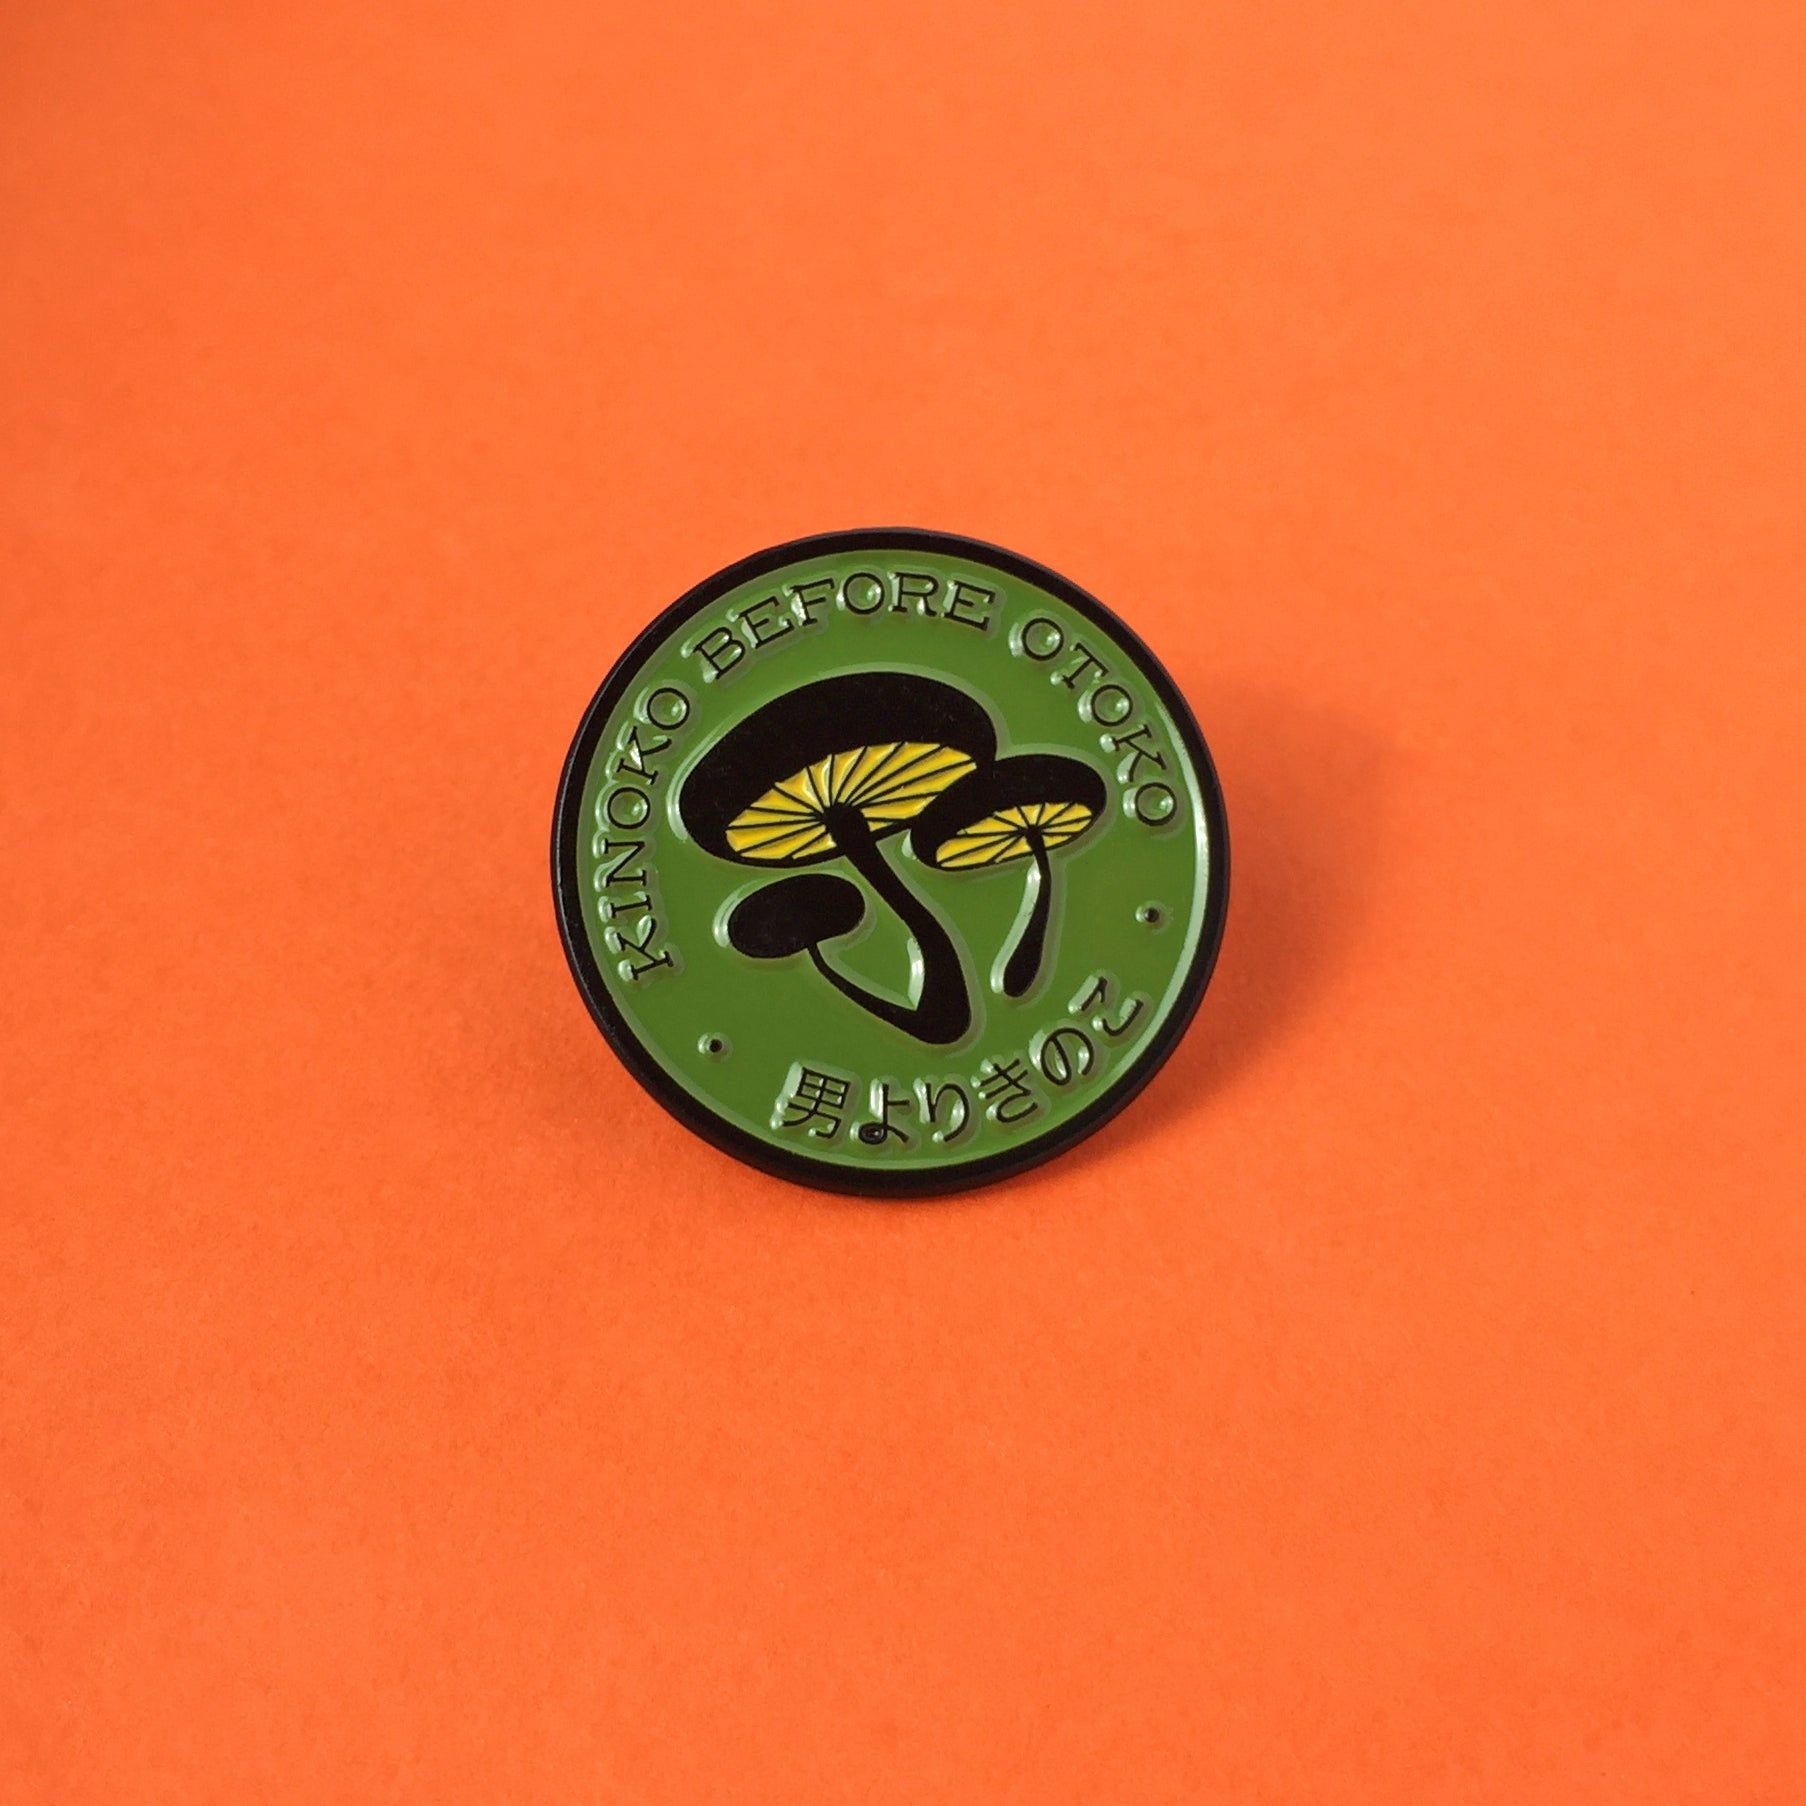 Kinoko Before Otoko Pins—Green Variant